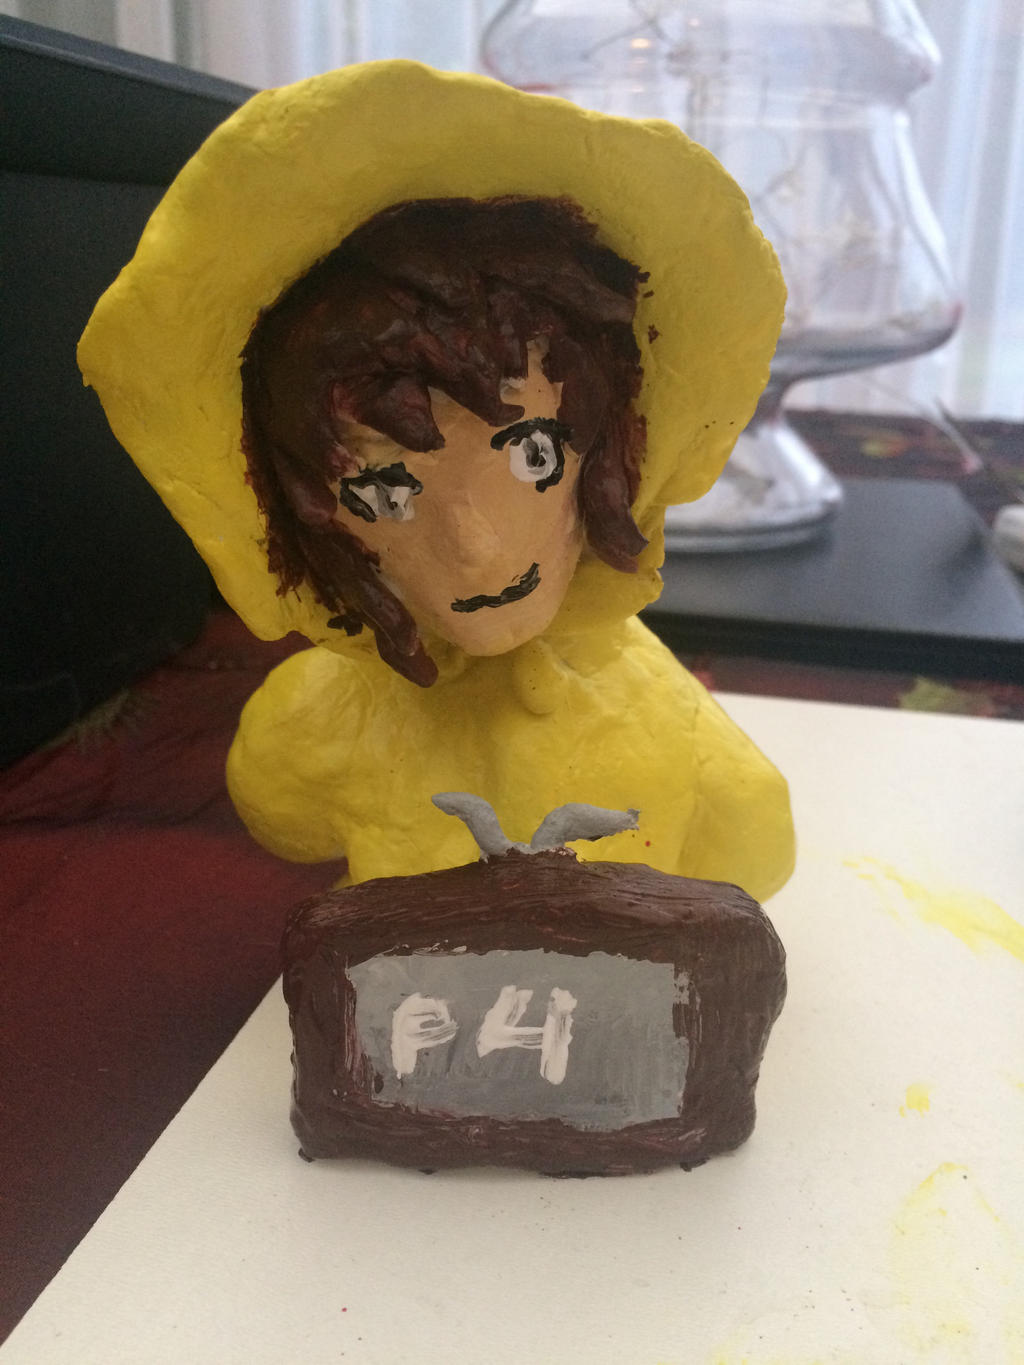 Adachi clay finished  by epicbubble7